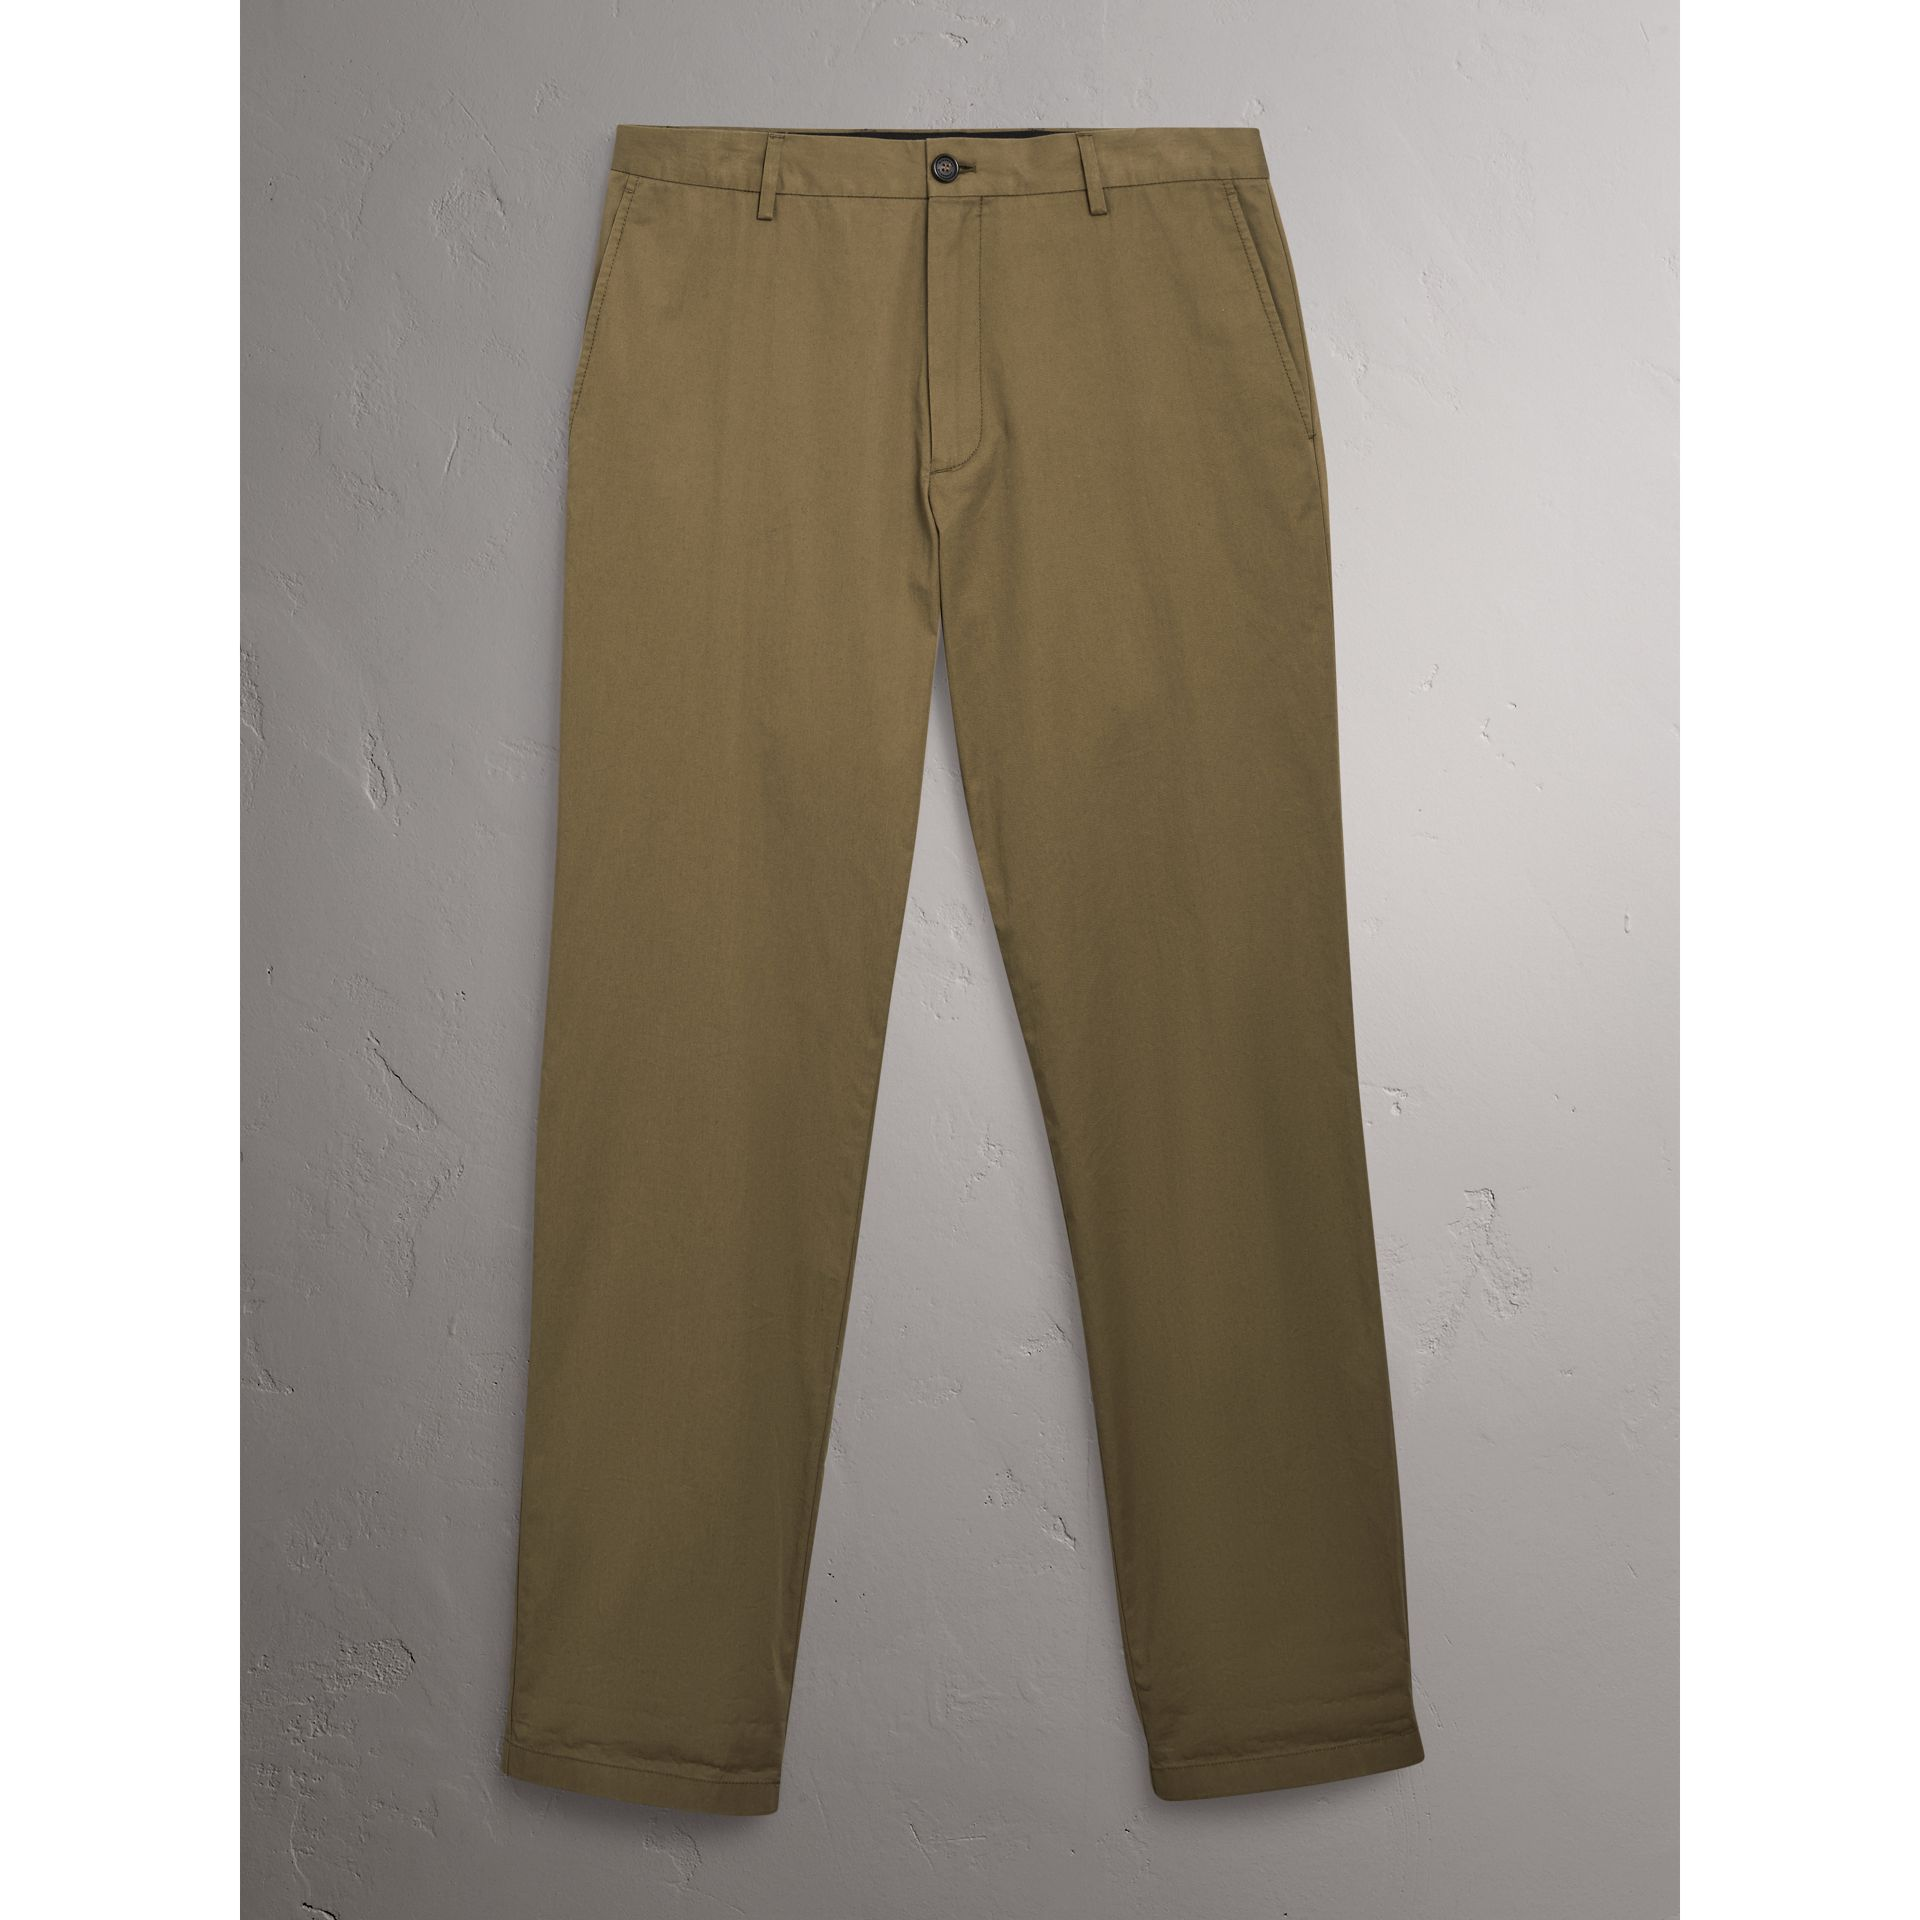 Cotton Twill Chinos in Olive Green - Men | Burberry - gallery image 2